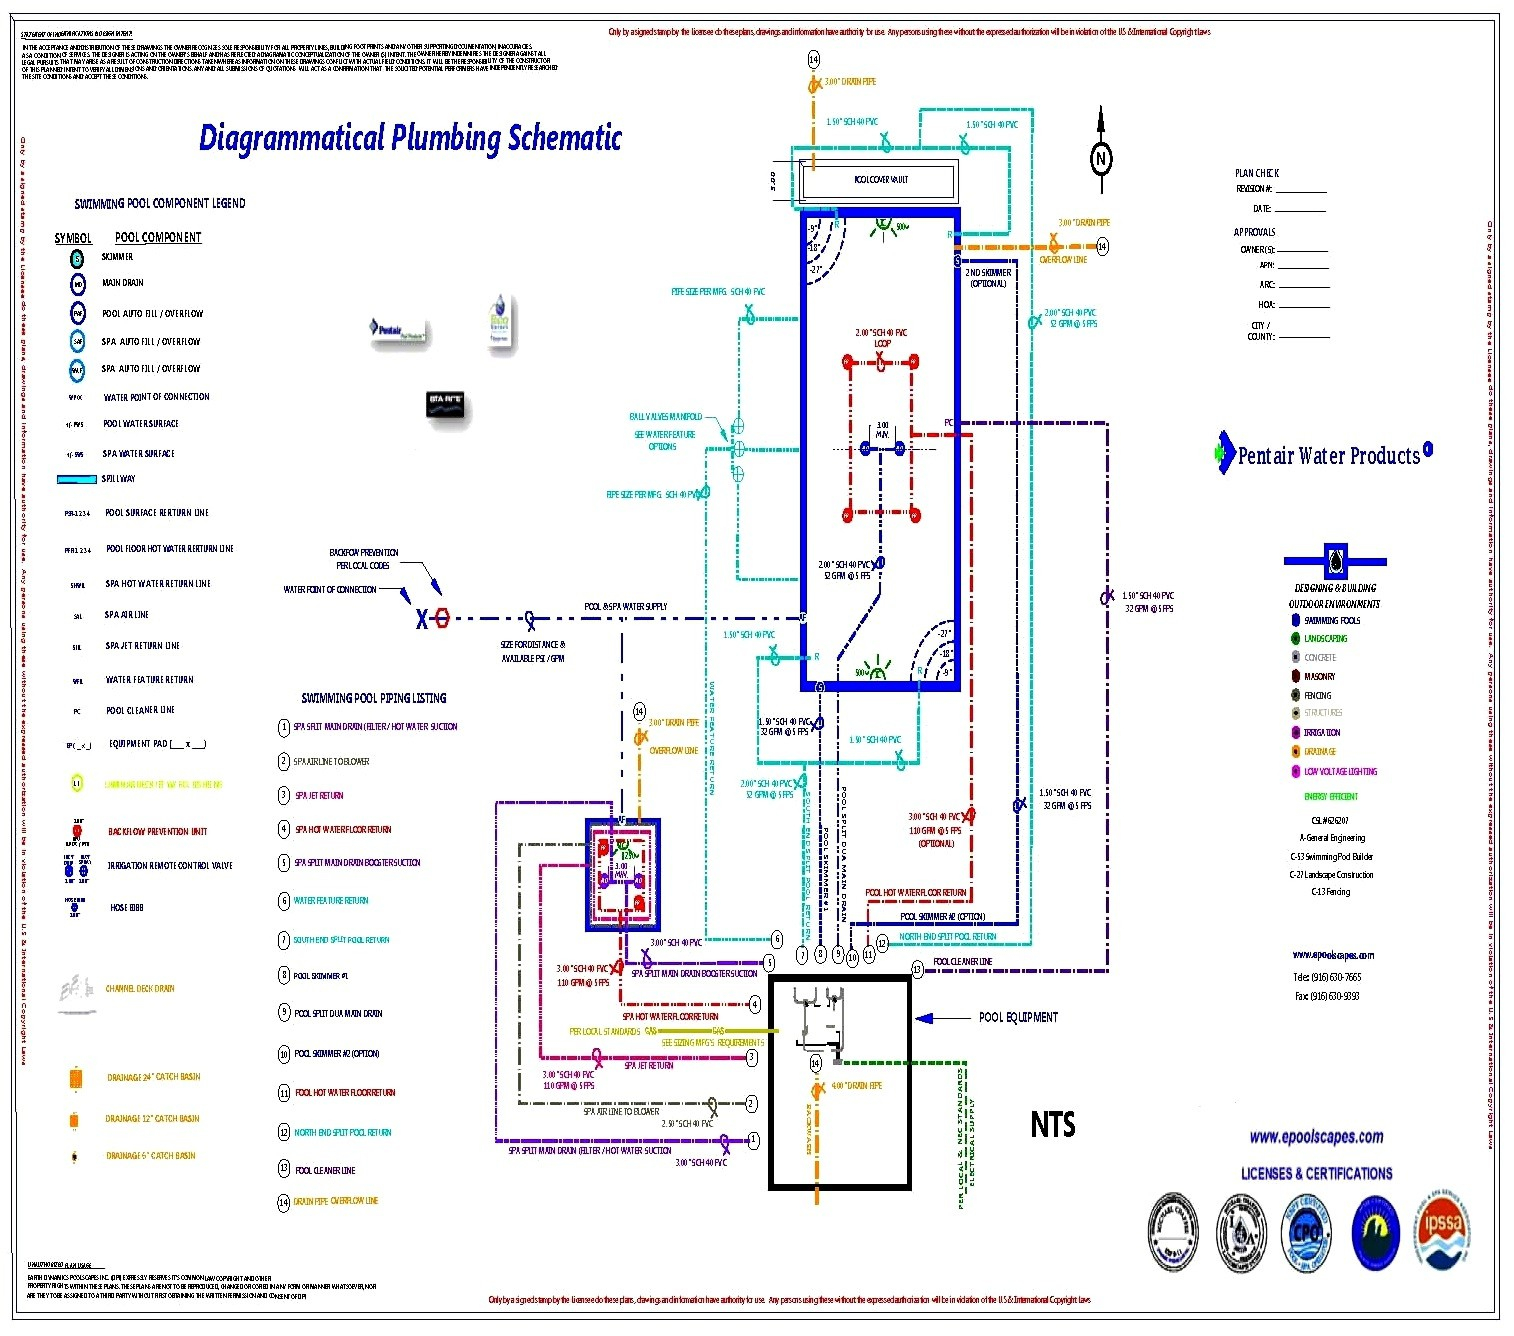 swimming pool electrical wiring diagram Collection-Wiring Diagram For Swimming Pools Yhgfdmuor intended for sizing 1514 X 1336 20-j